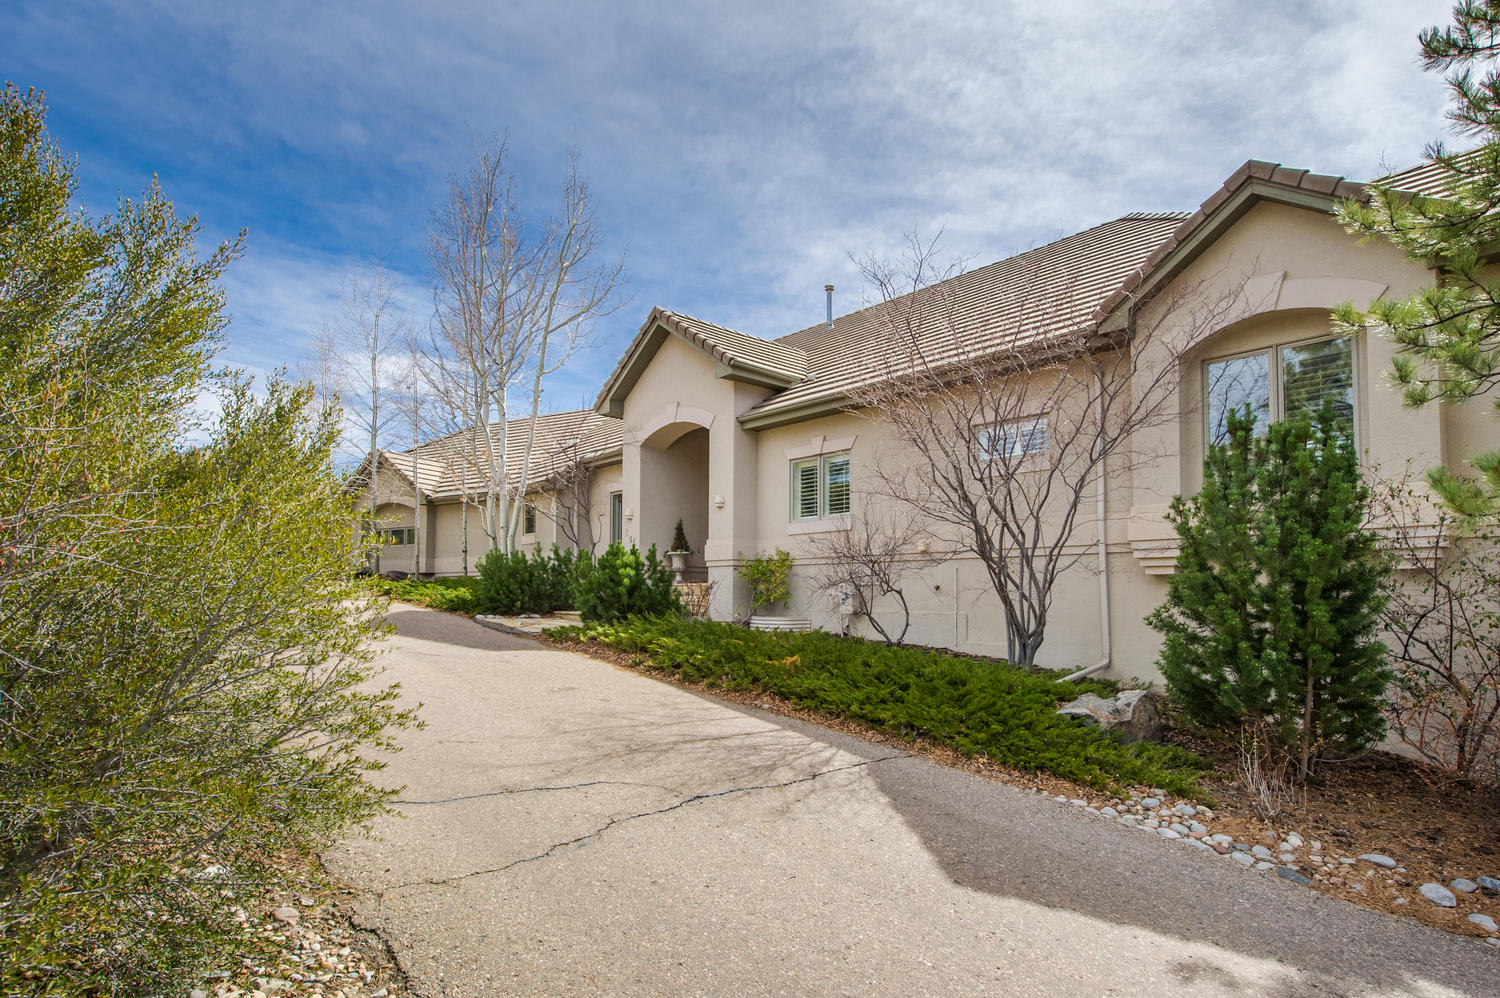 Single Family Home for Sale at 254 Lead Queen Dr Castle Pines Village, Castle Rock, Colorado, 80108 United States